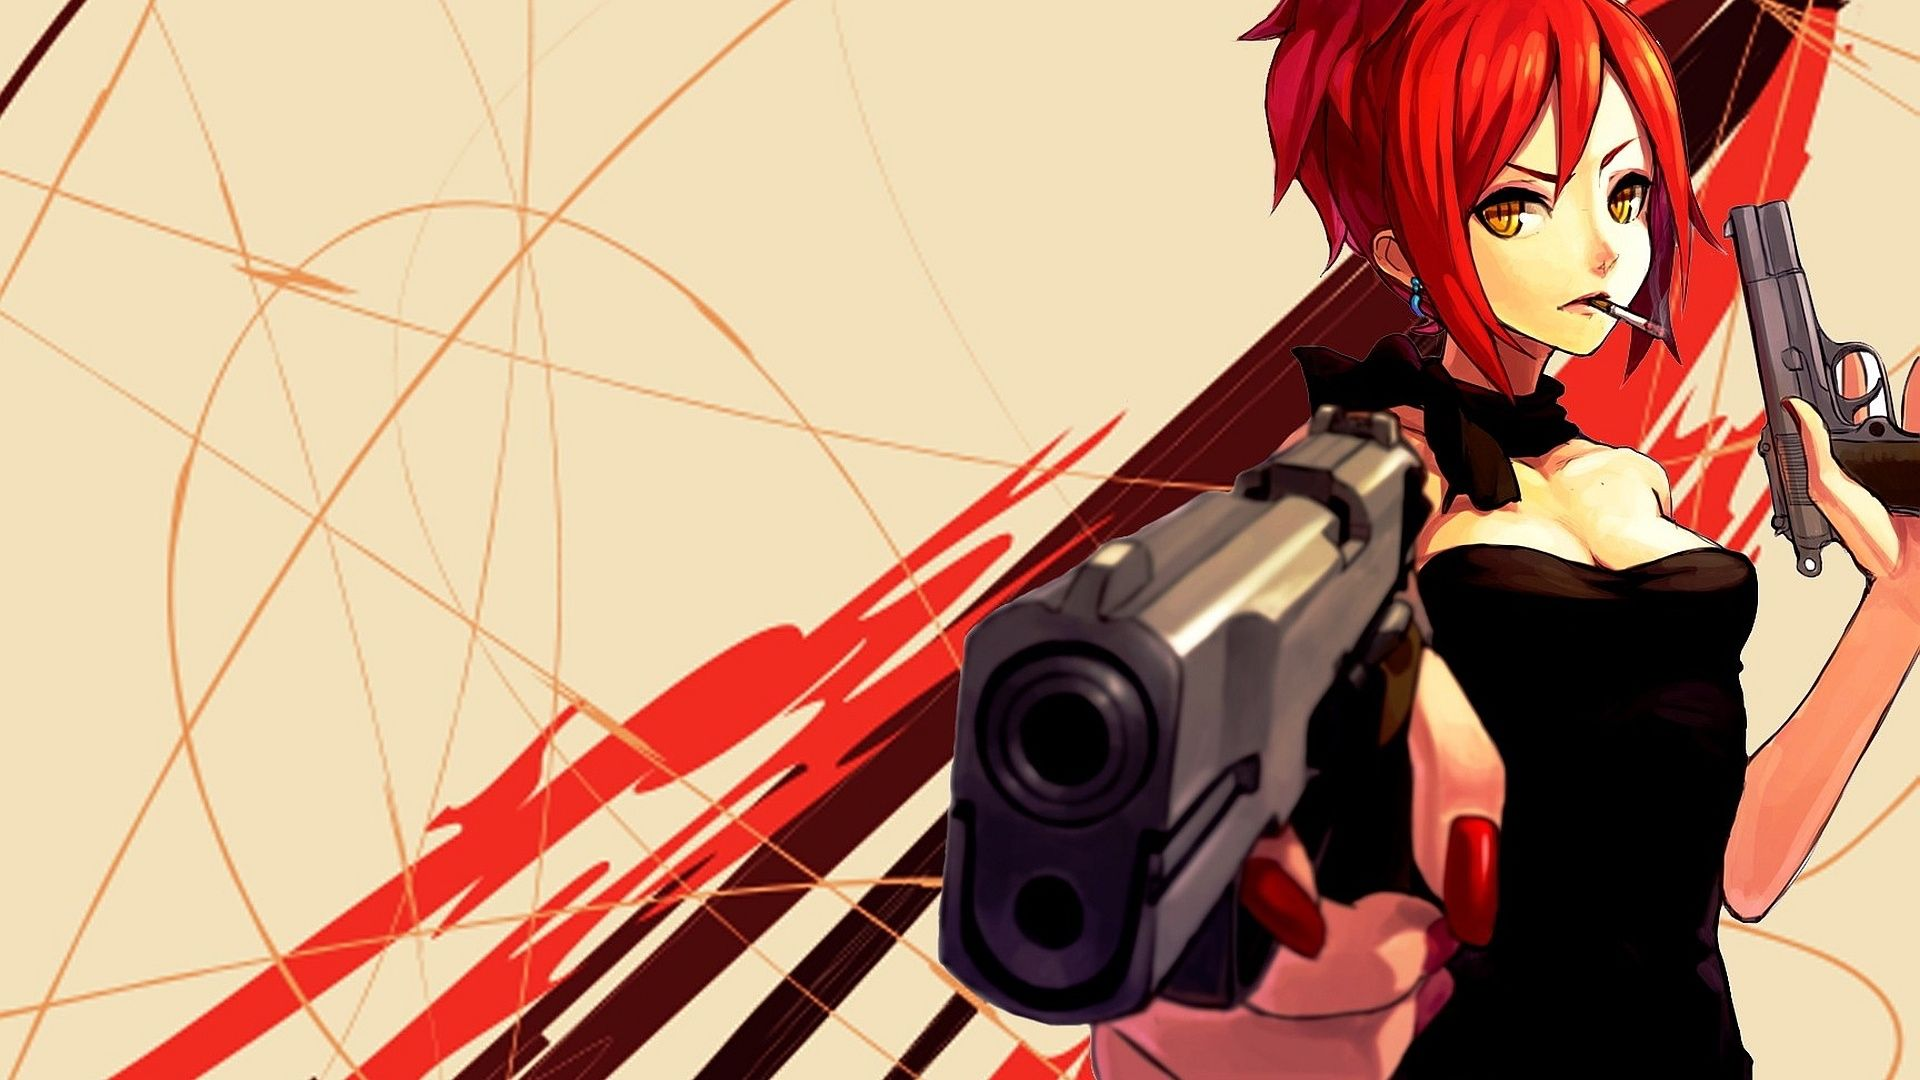 Anime Girls 1920x1080 Wallpapers Top Free Anime Girls 1920x1080 Backgrounds Wallpaperaccess